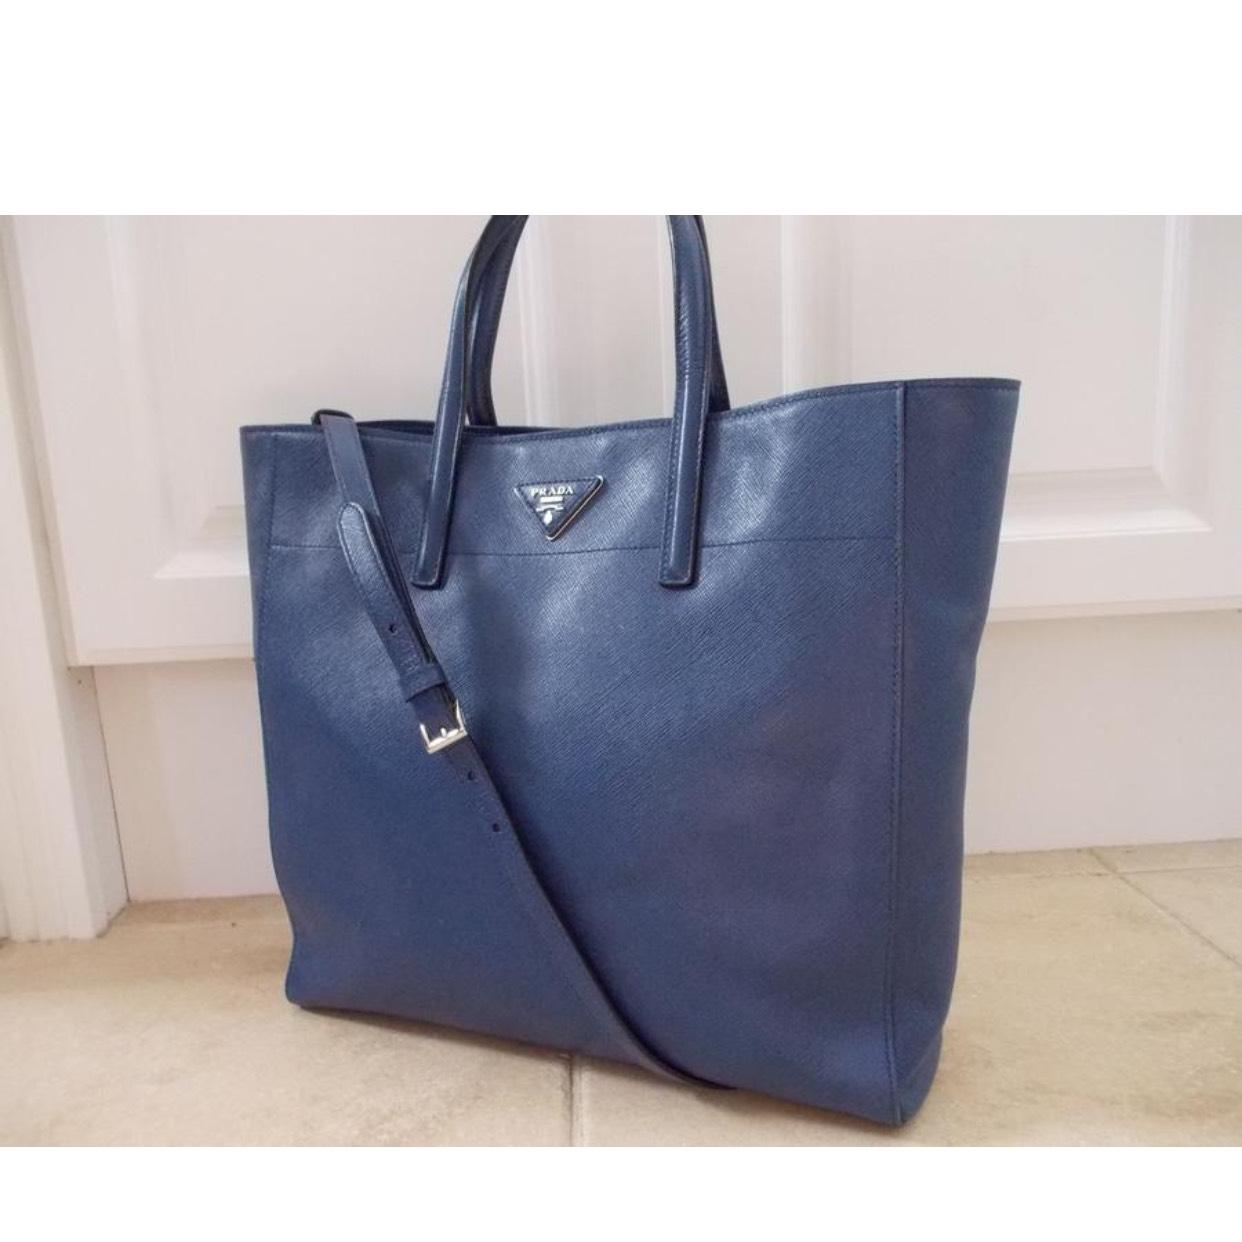 f19b2c471f37 ... canada prada tote with straps blue saffiano leather cross body bag  tradesy b180e 6cbba